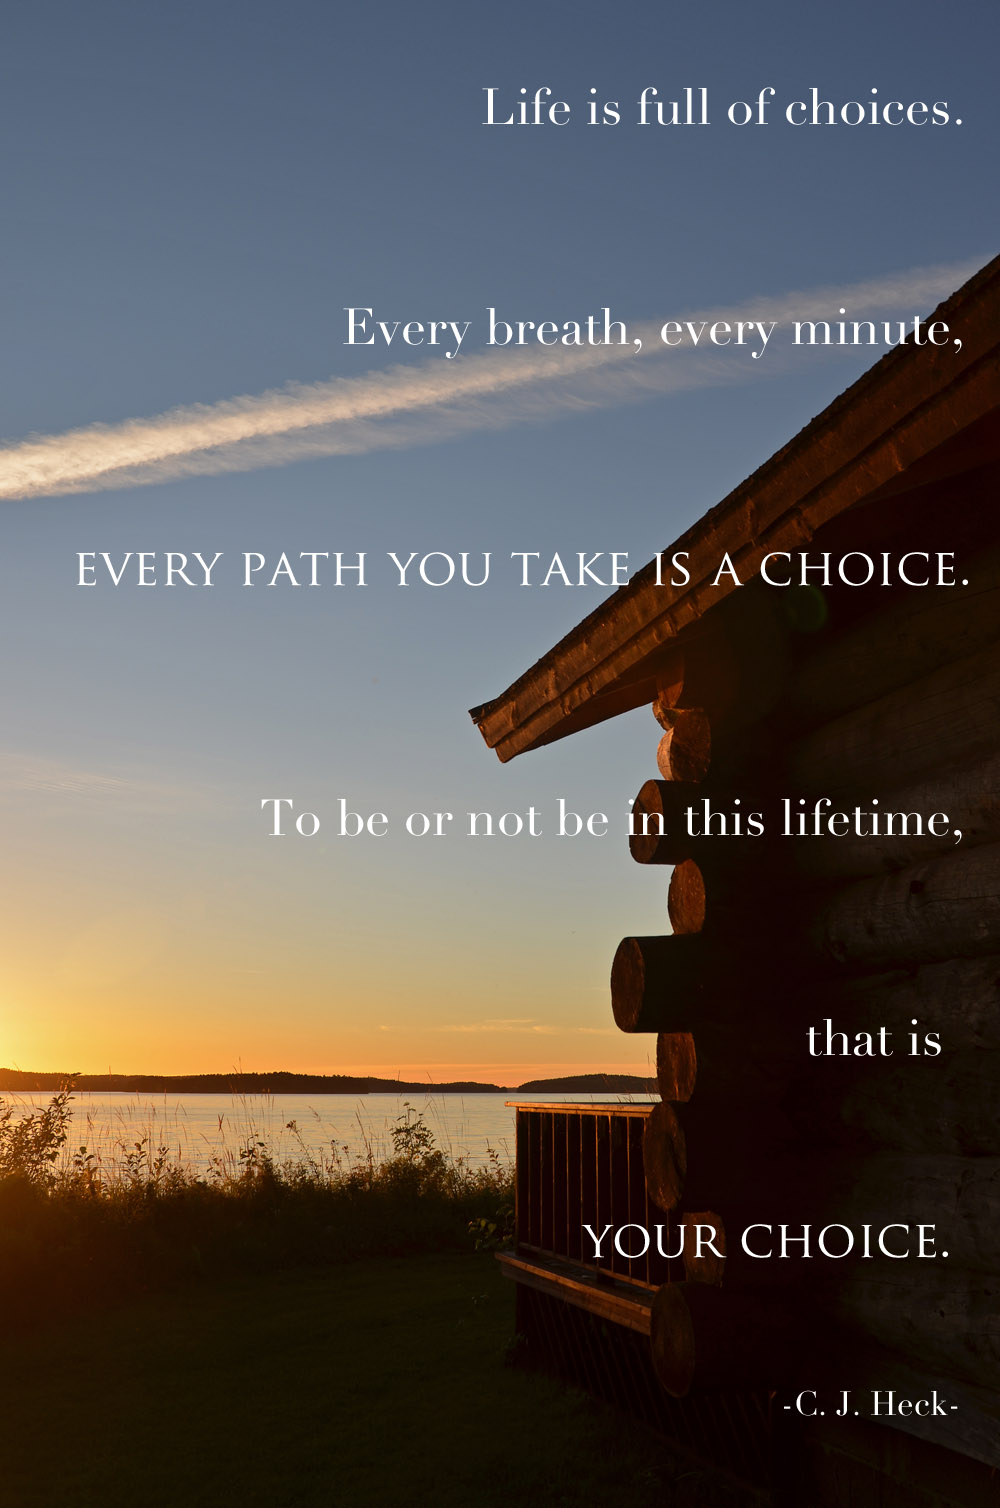 life-choice-quote